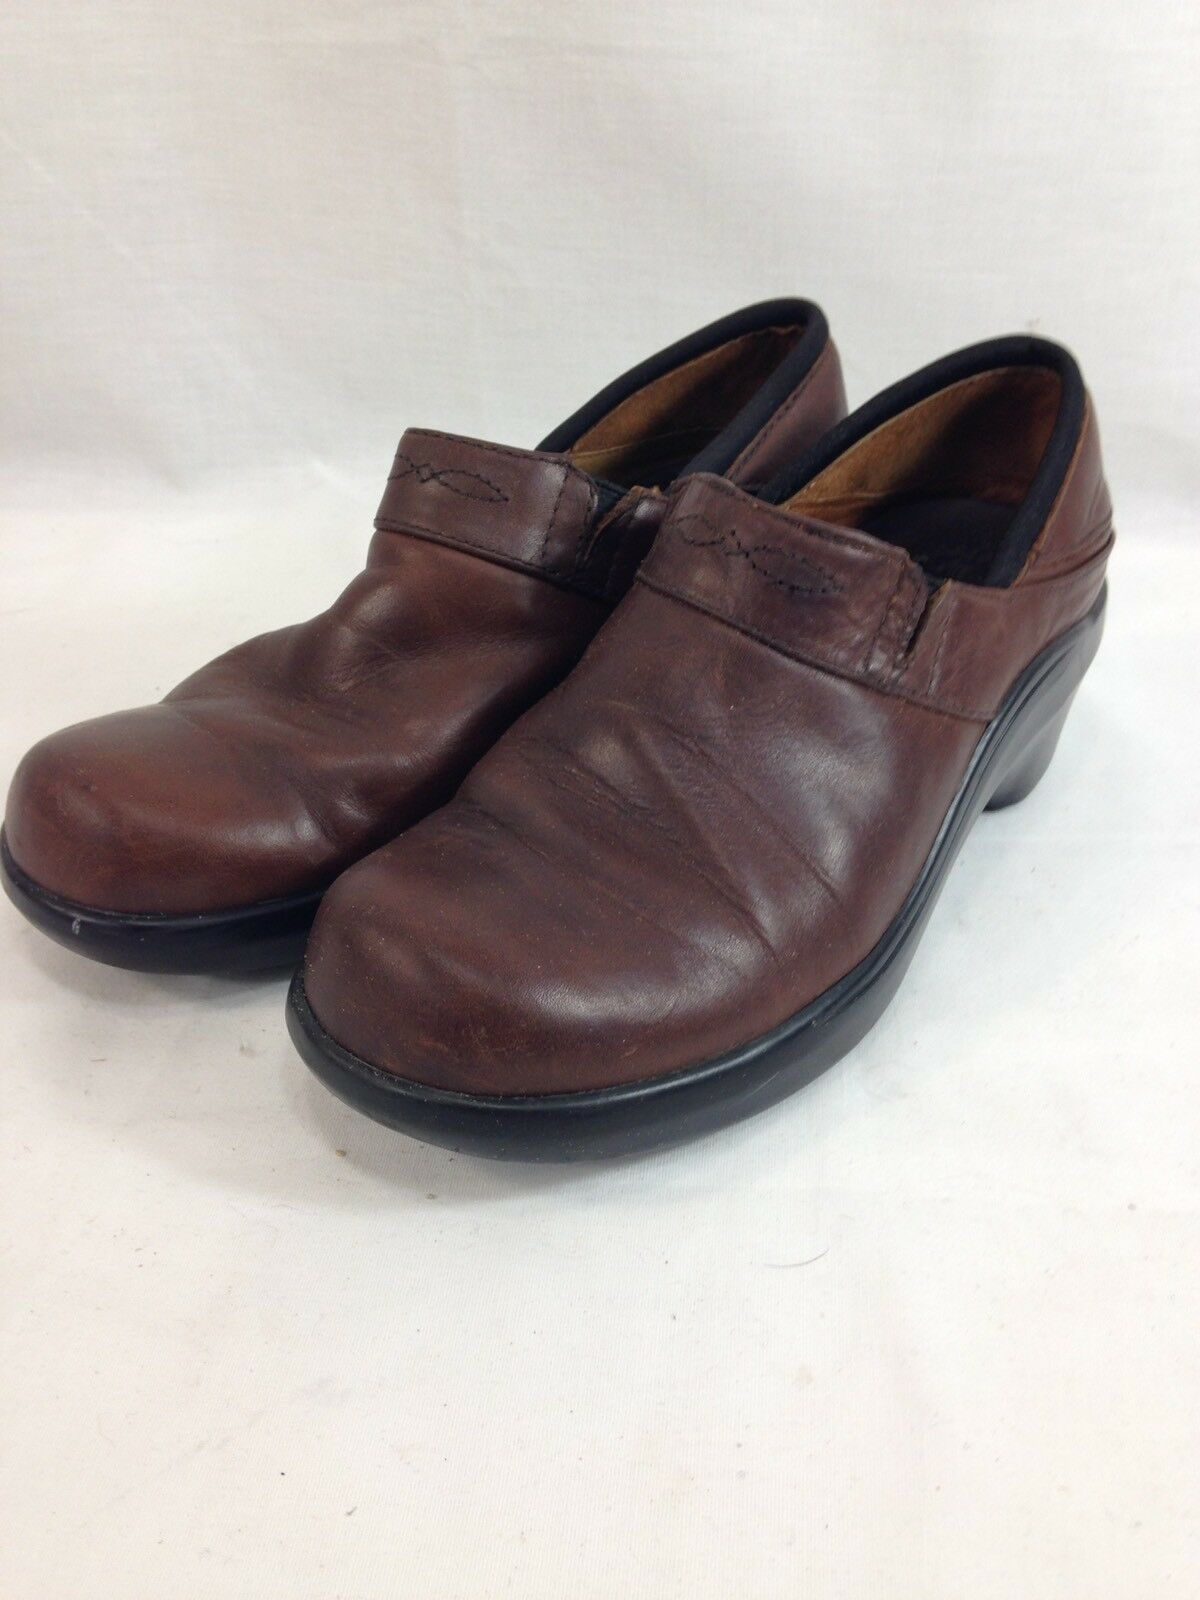 Ariat chaussures Clogs Mules femmes 8 M marron Leather Slip On Comfort